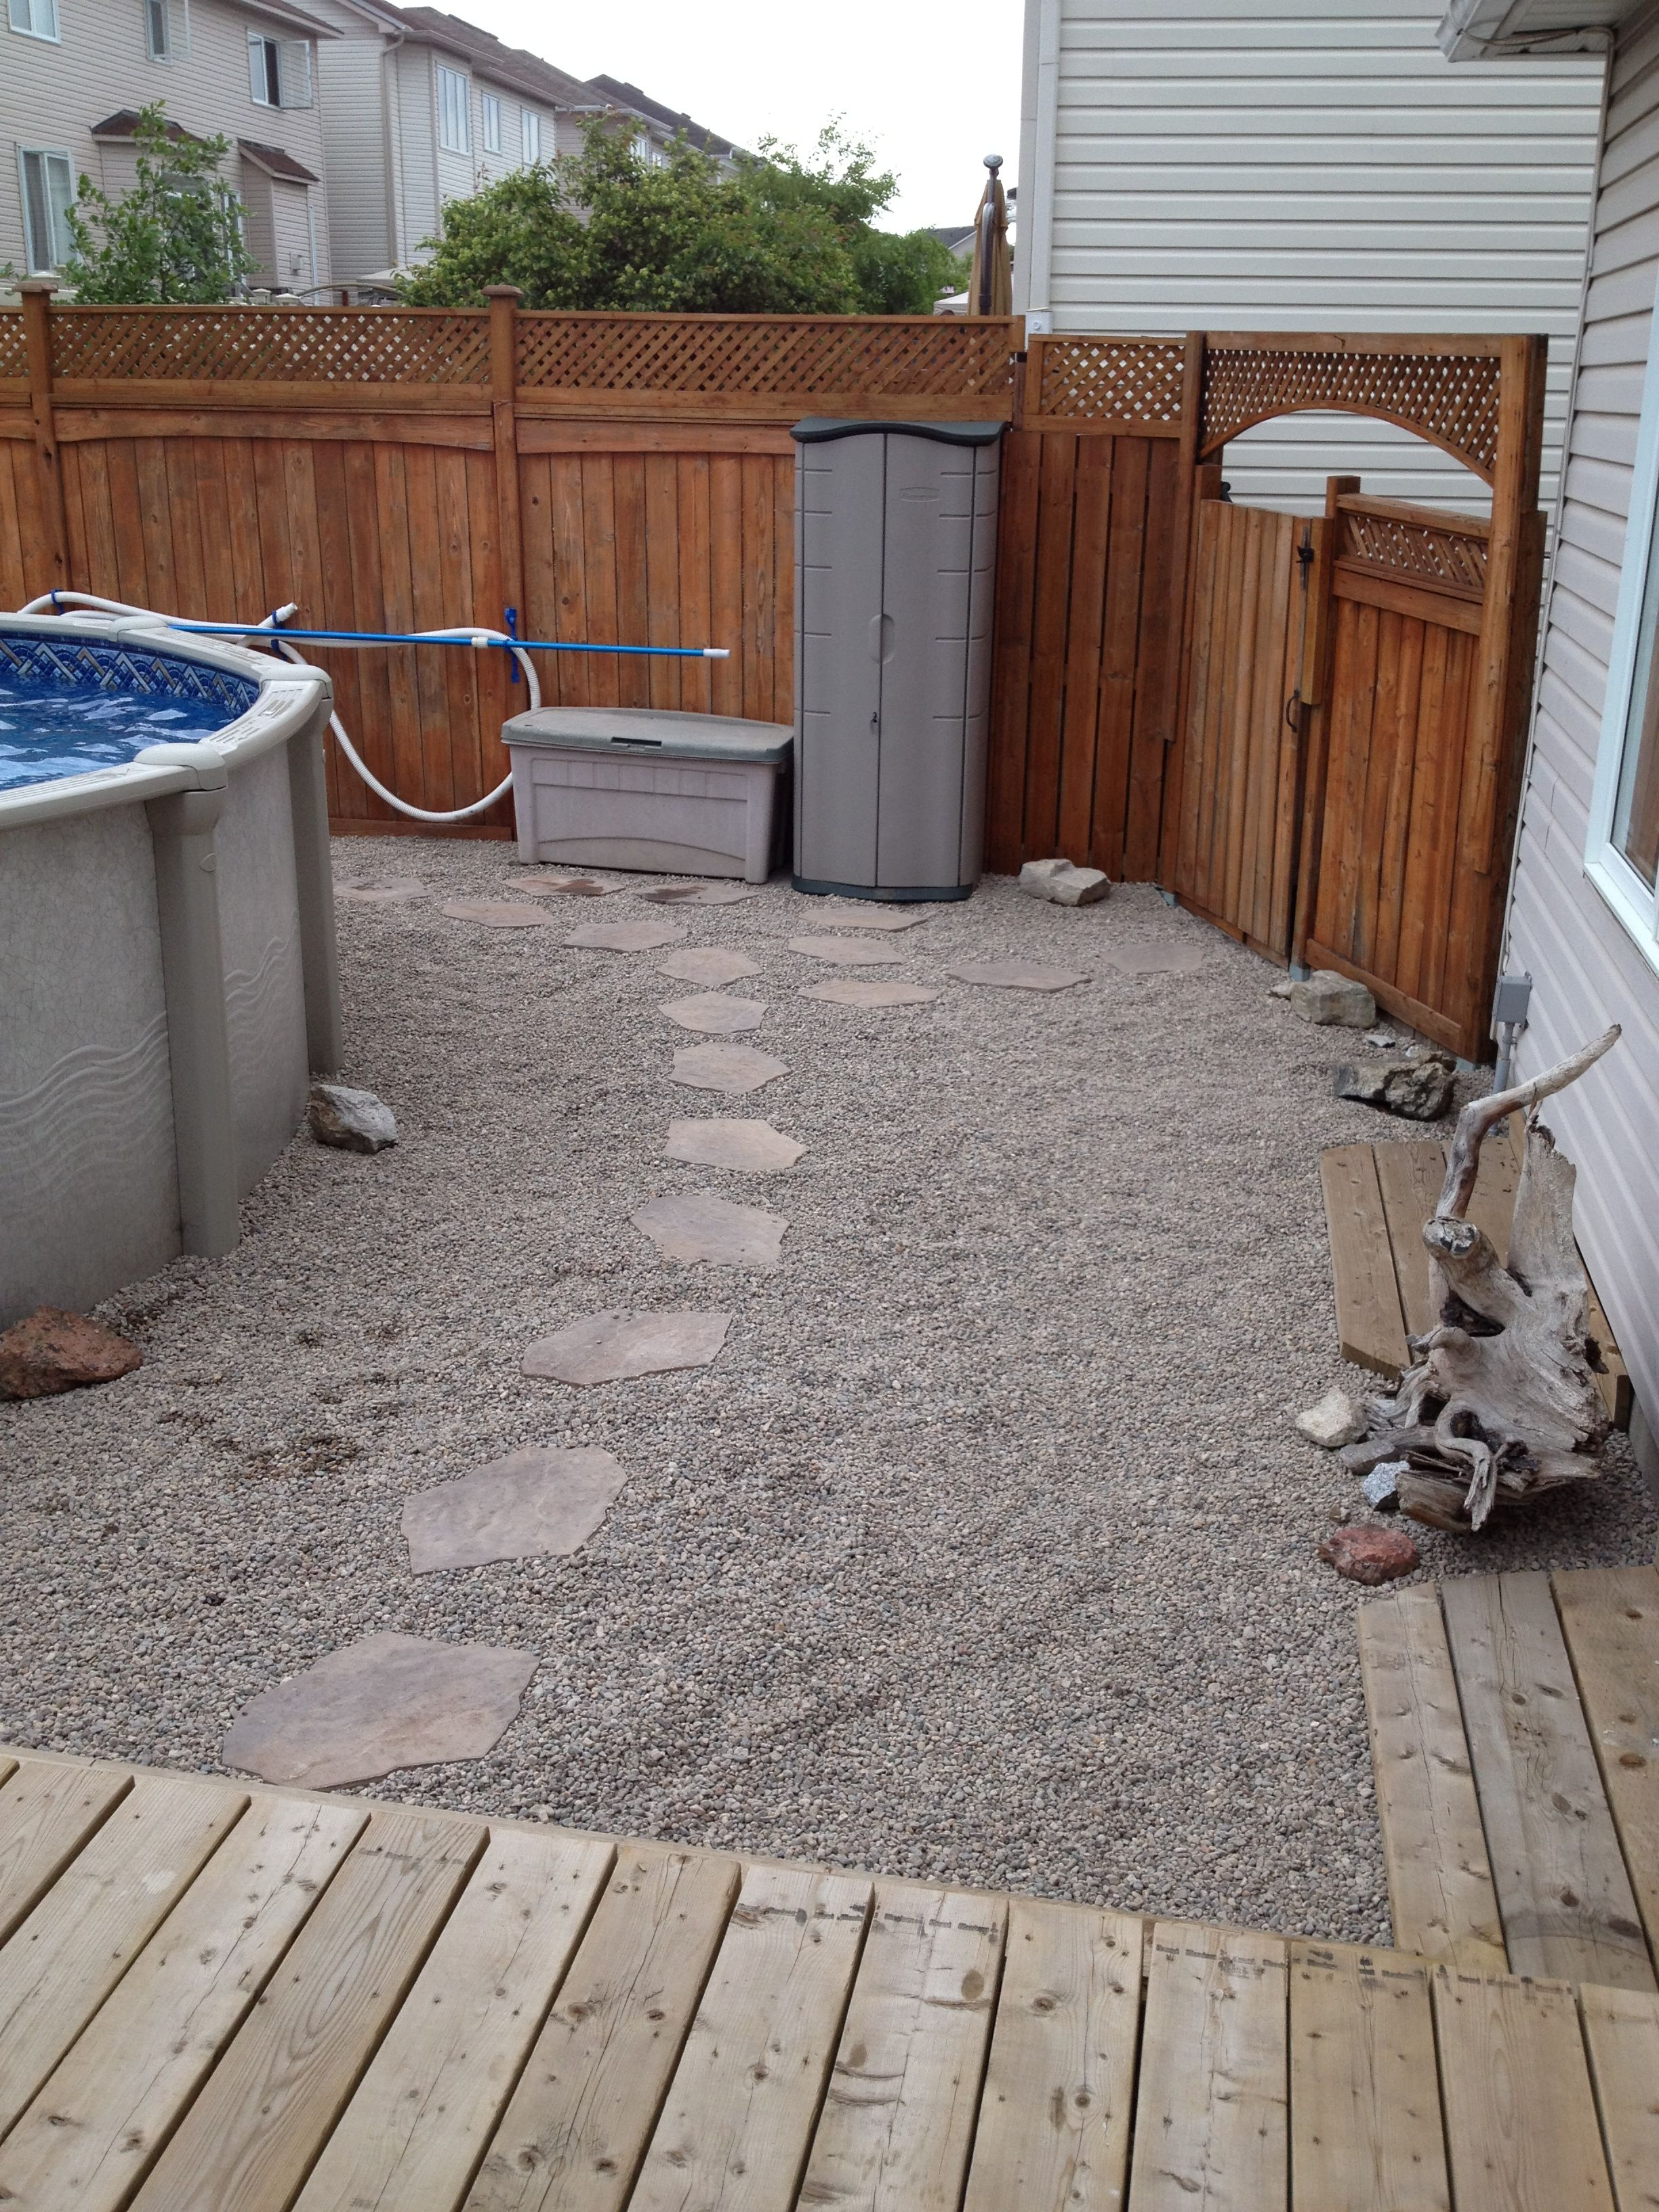 Landscaping around our 18 39 above ground pool riverstone rock for Above ground pool storage ideas